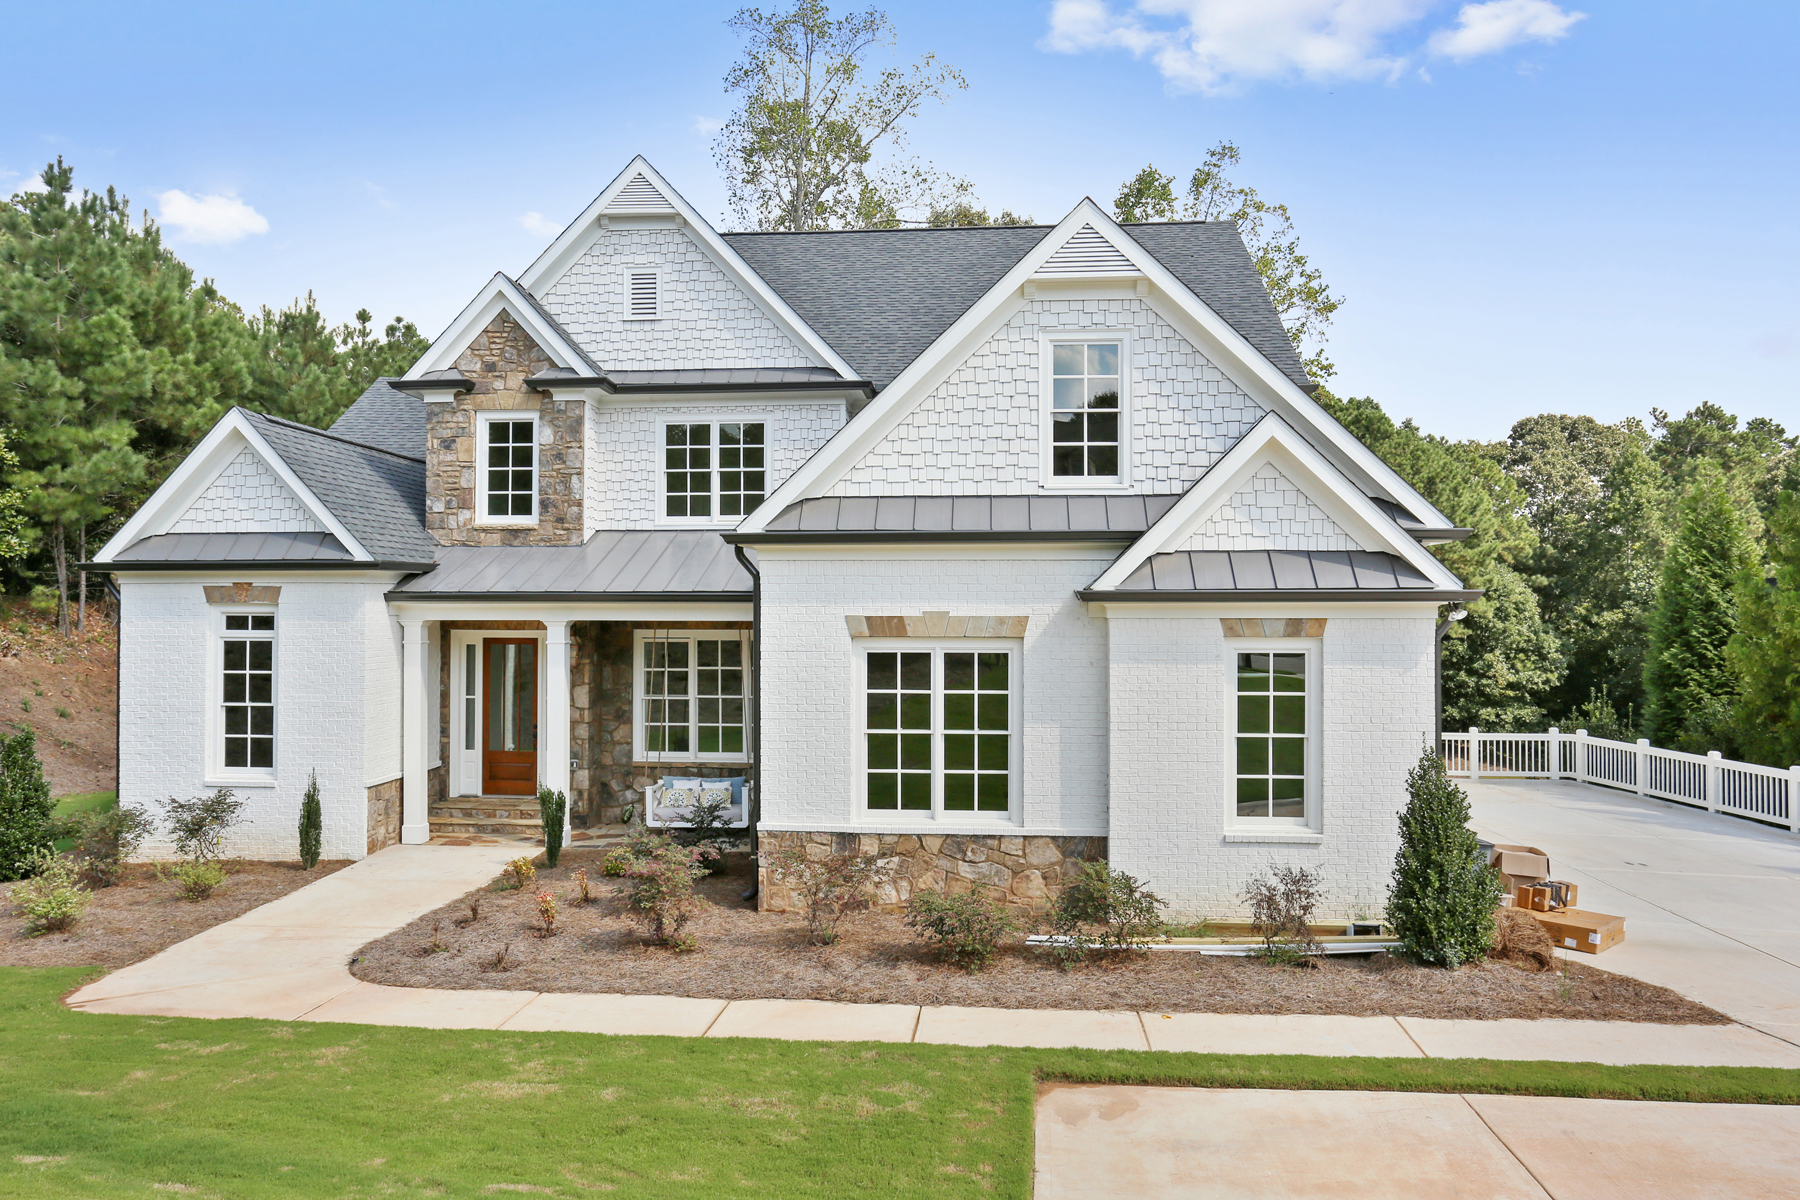 Single Family Home for Sale at New Construction In Sought After Swim Tennis 13043 Overlook Pass Roswell, Georgia 30075 United States